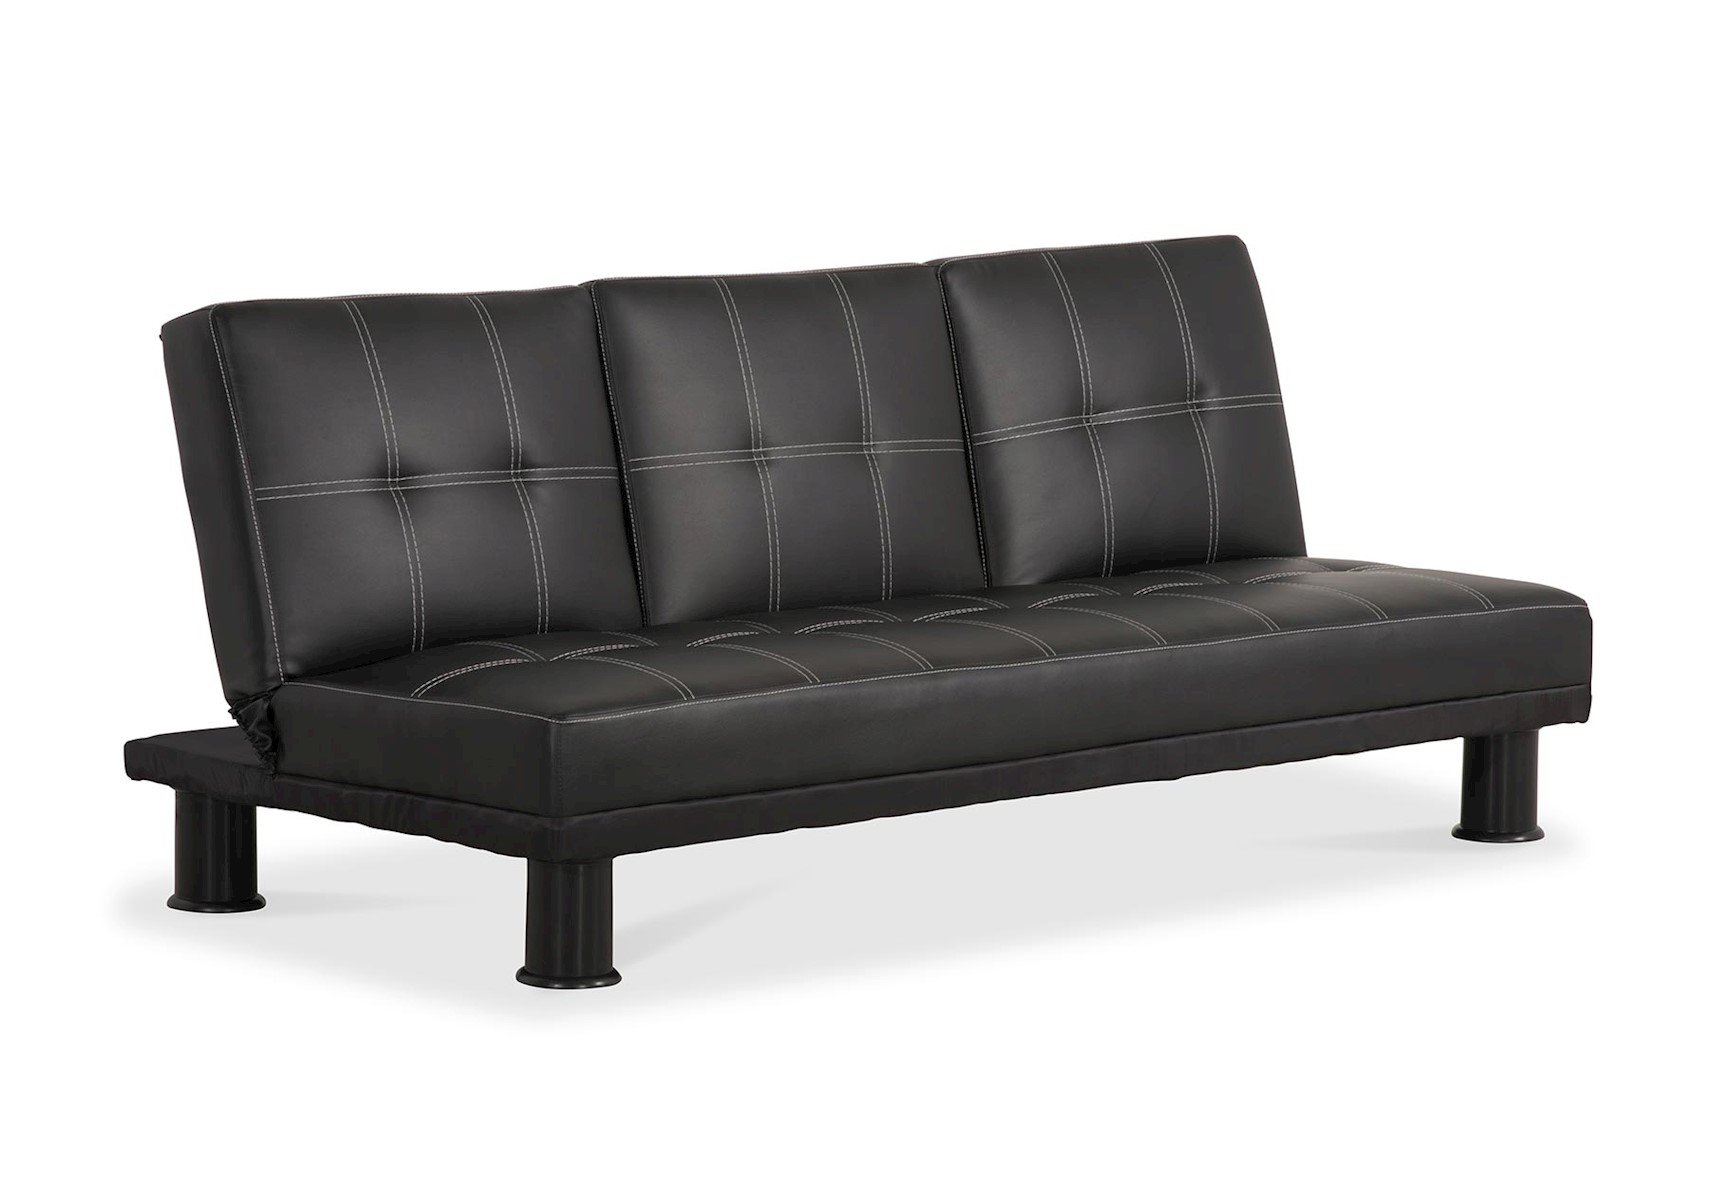 klik klak sofa with storage consumer review sleeper futon